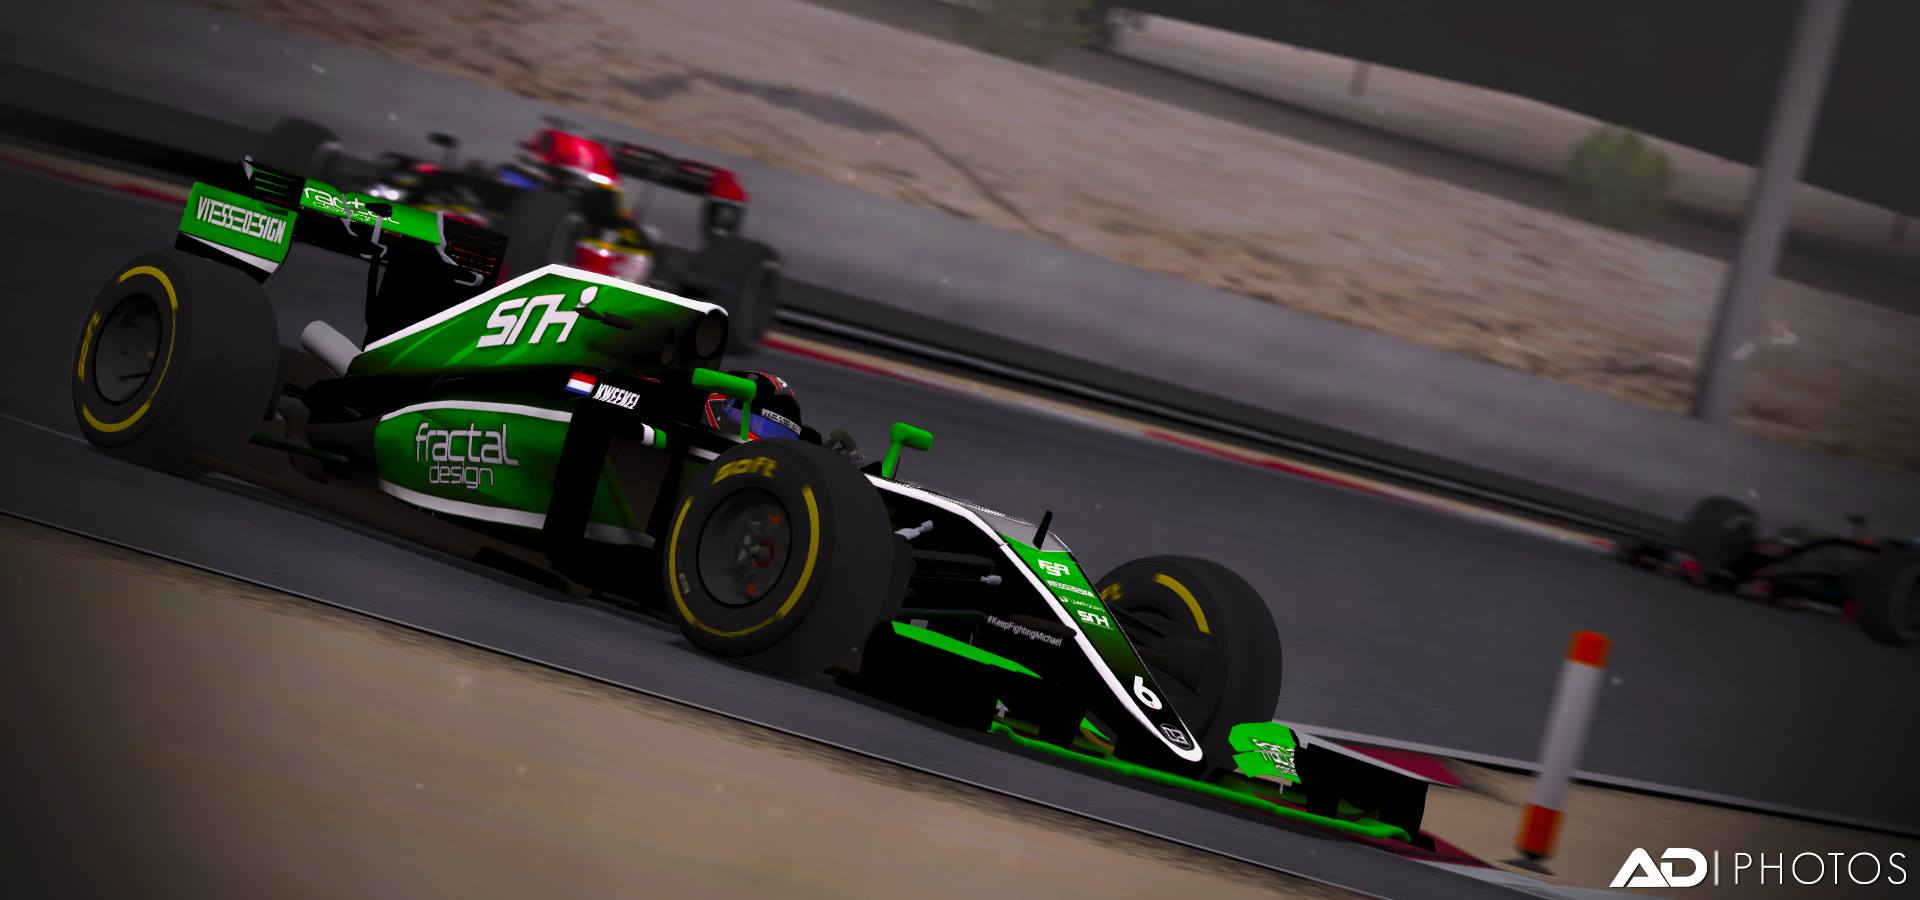 Kweekel Shines Under The Lights - 2016 Formula SimRacing World Championship Round 2 Race Review